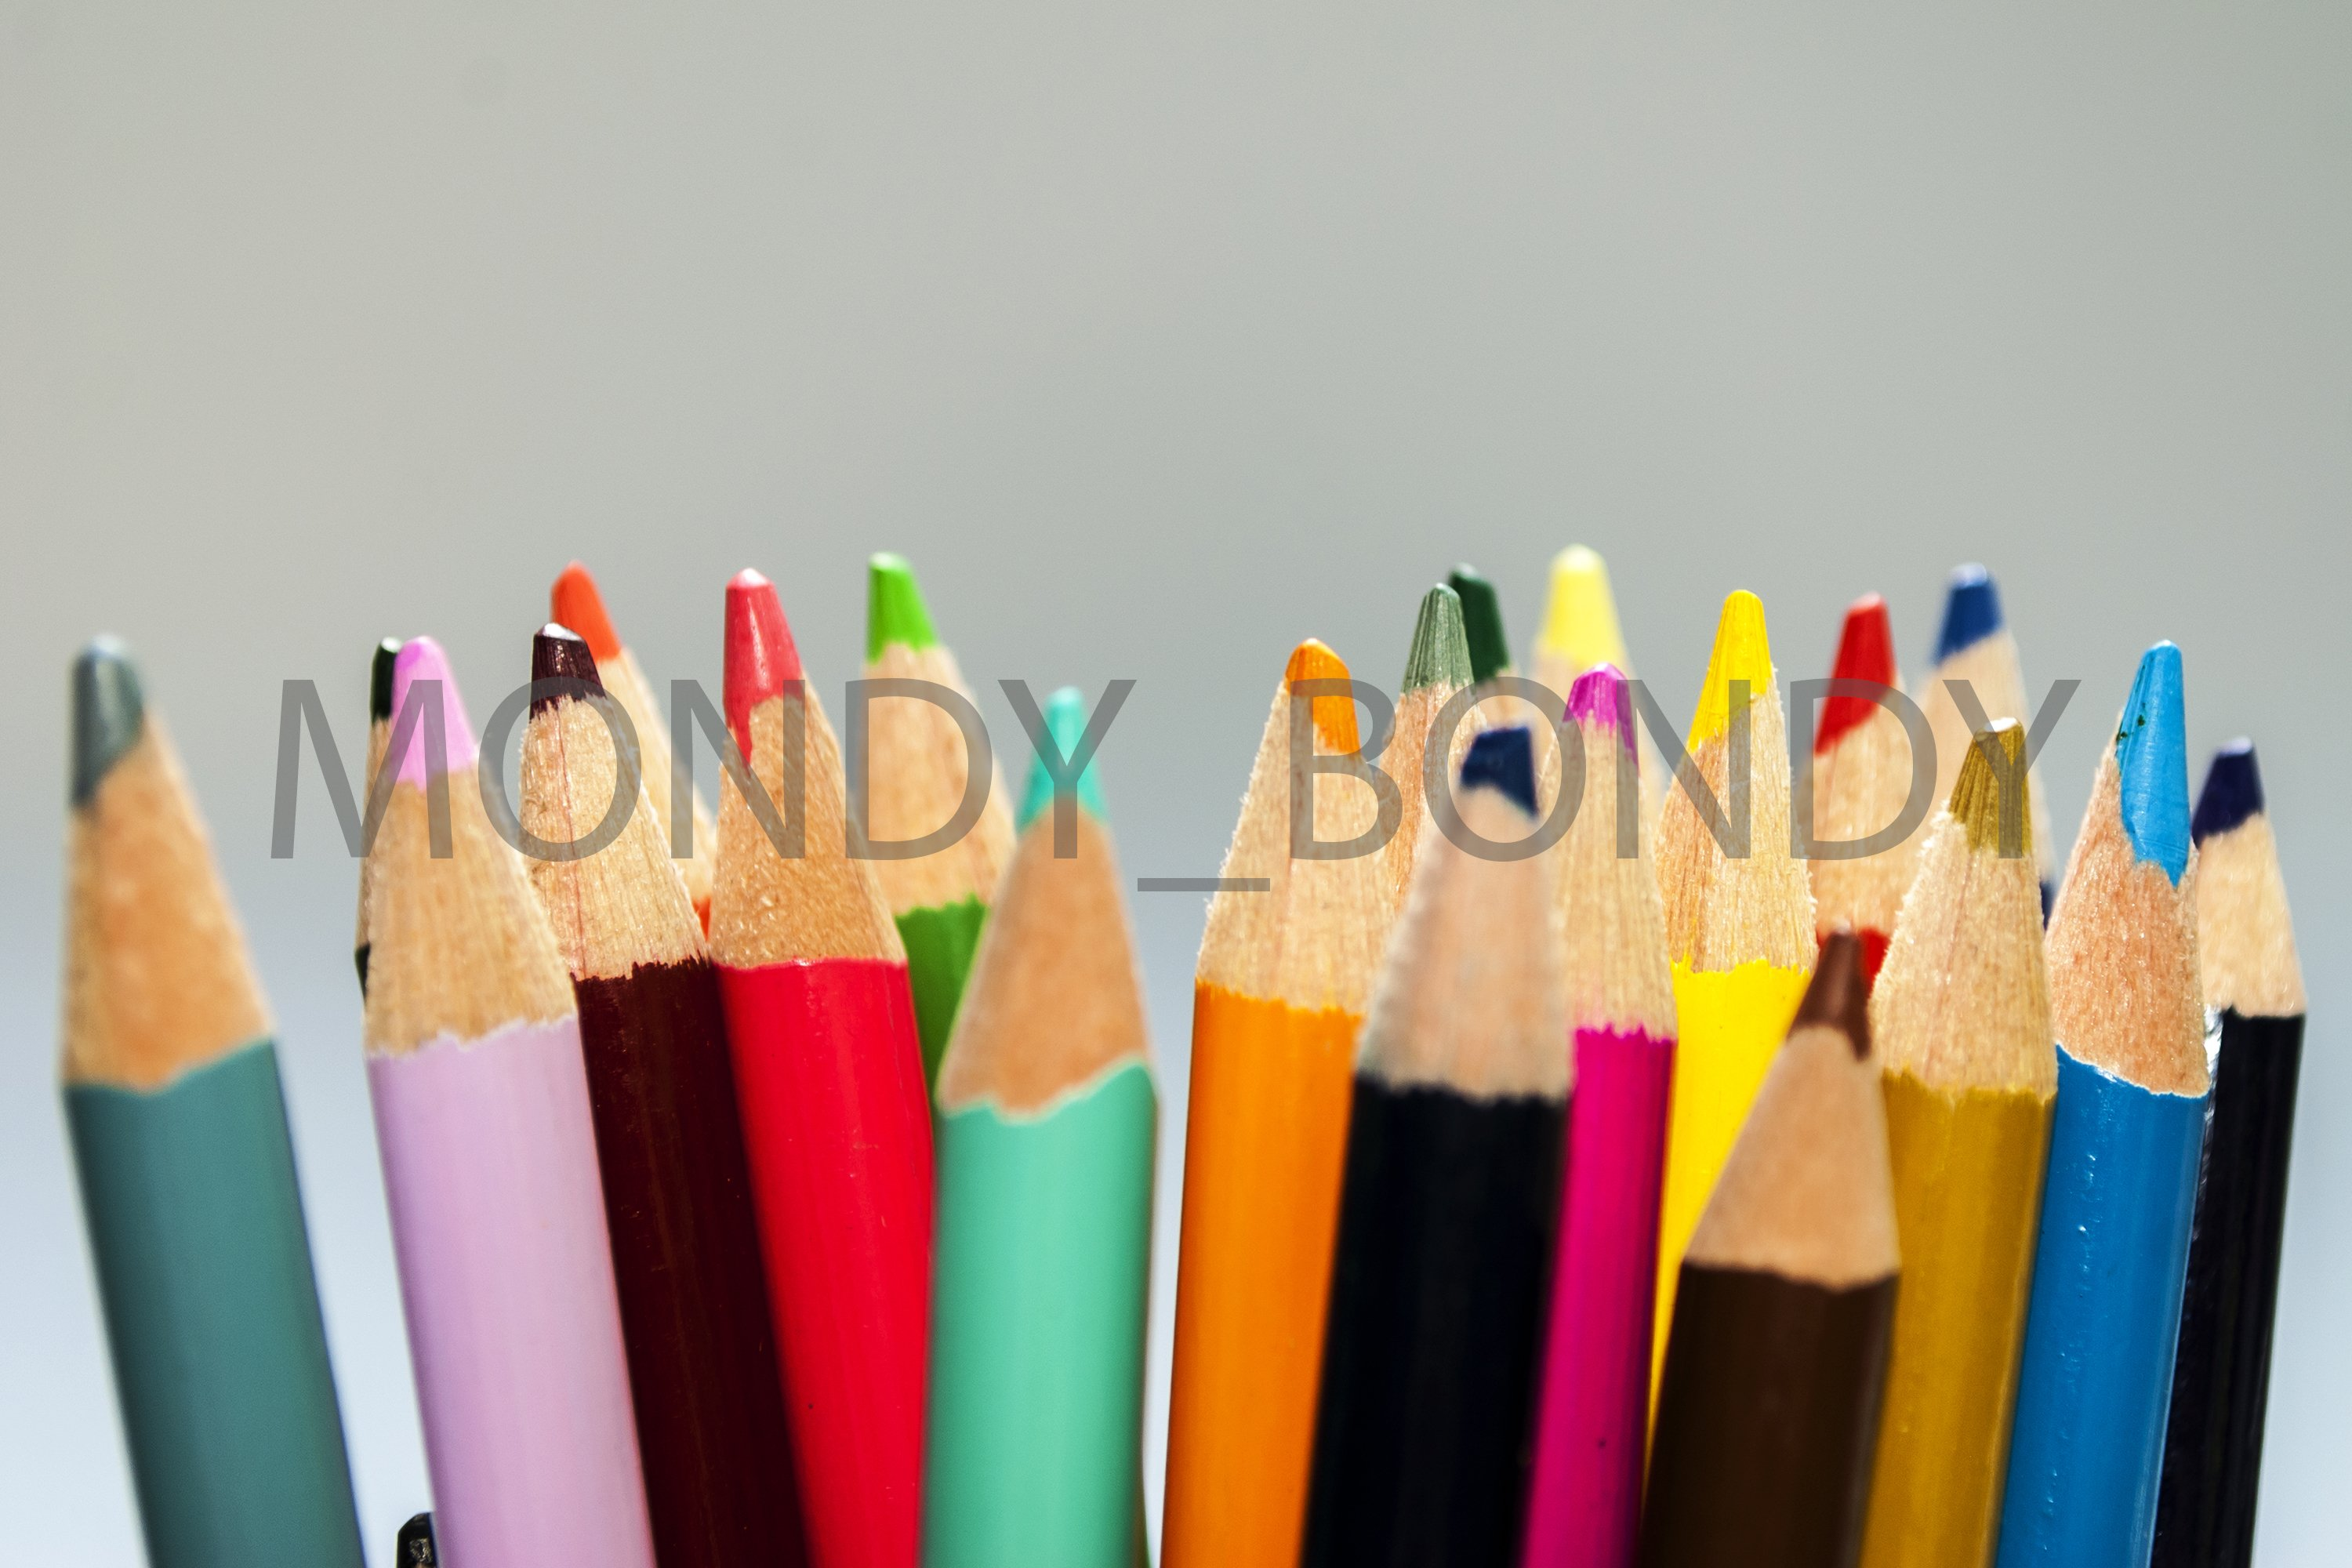 Color pencils on a white background close-up example image 1